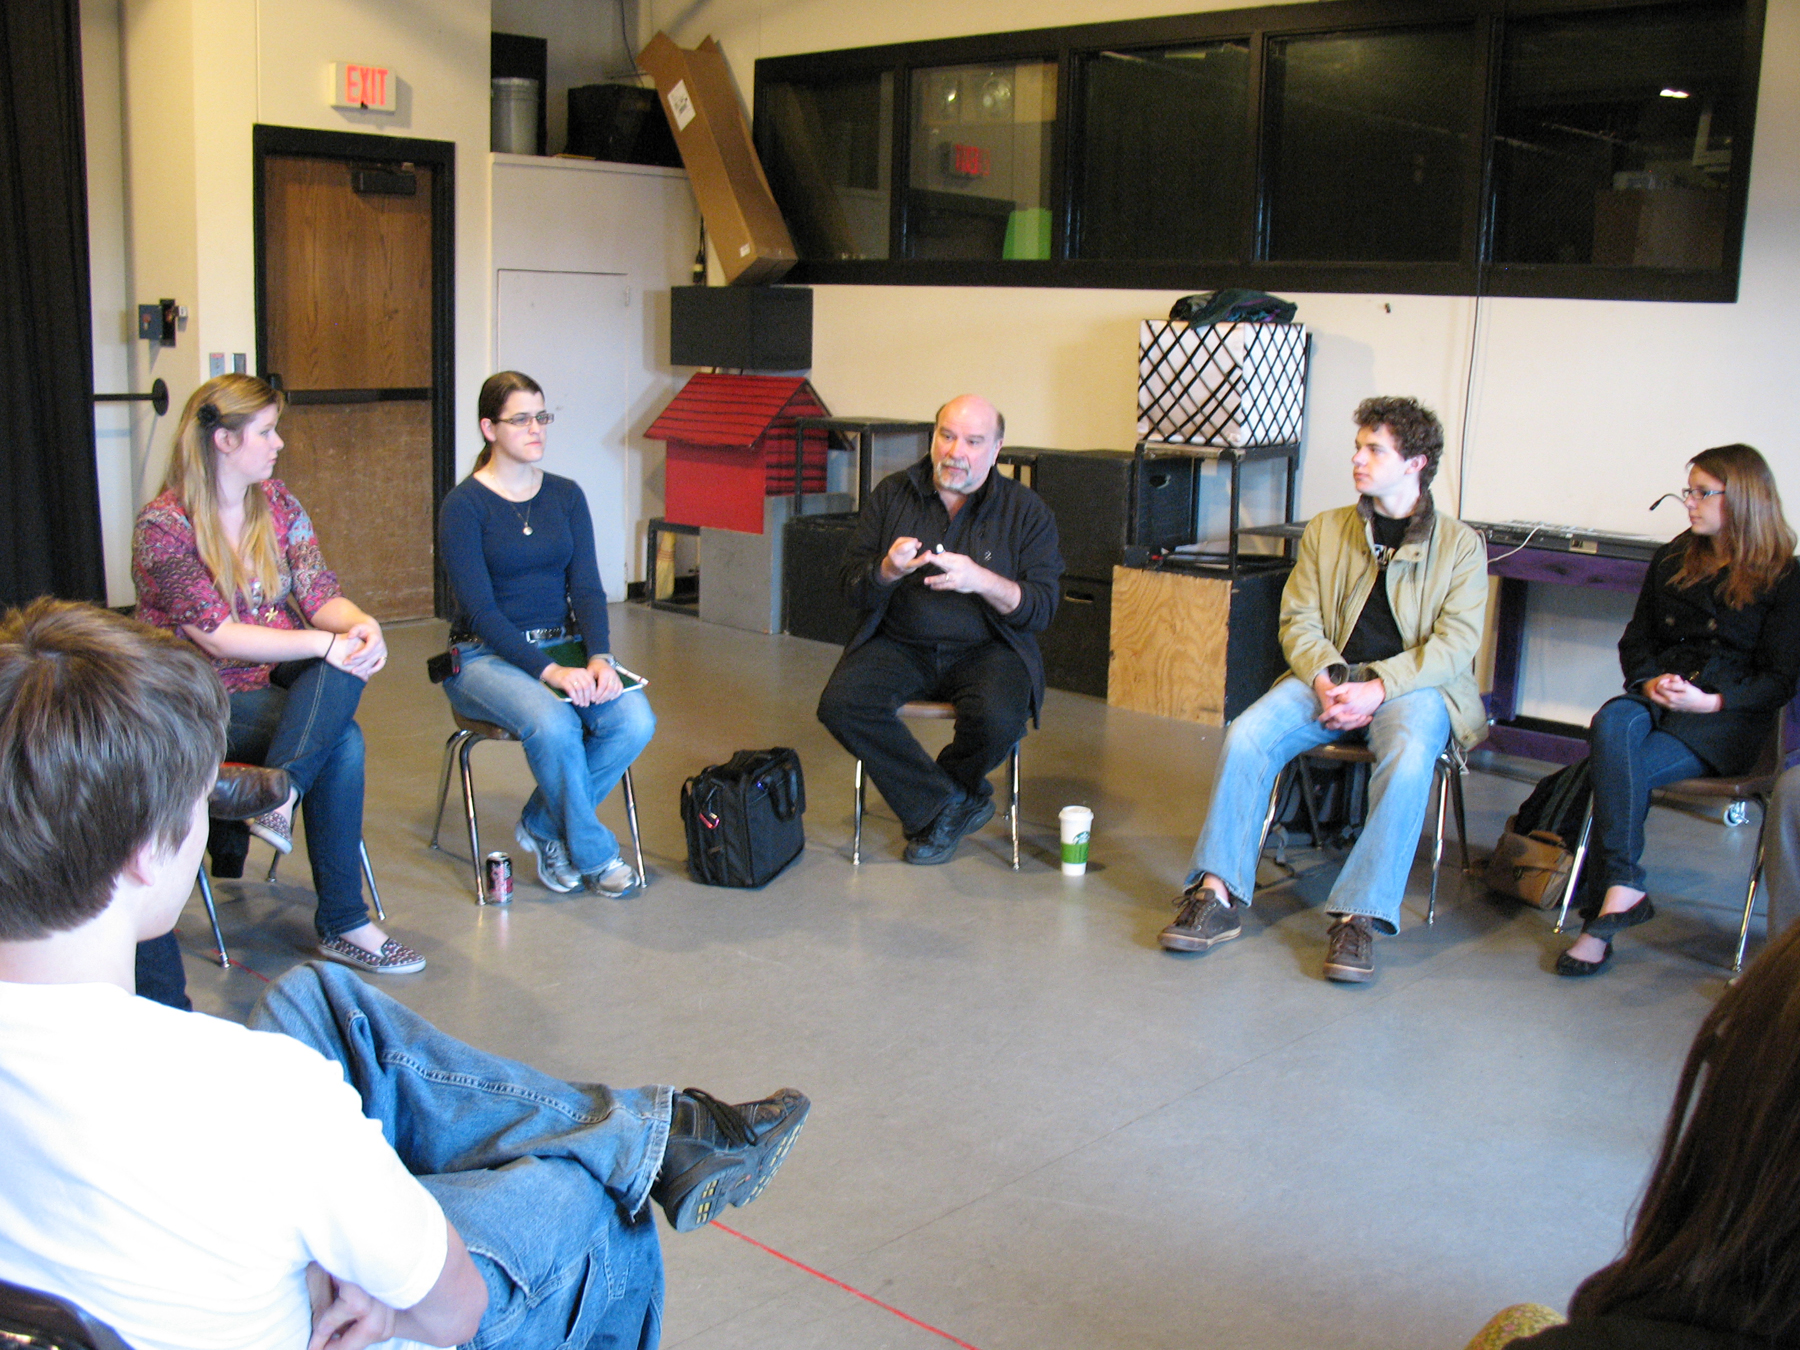 Steve Shelley (center) visits with students in a lighting design class on April 4.